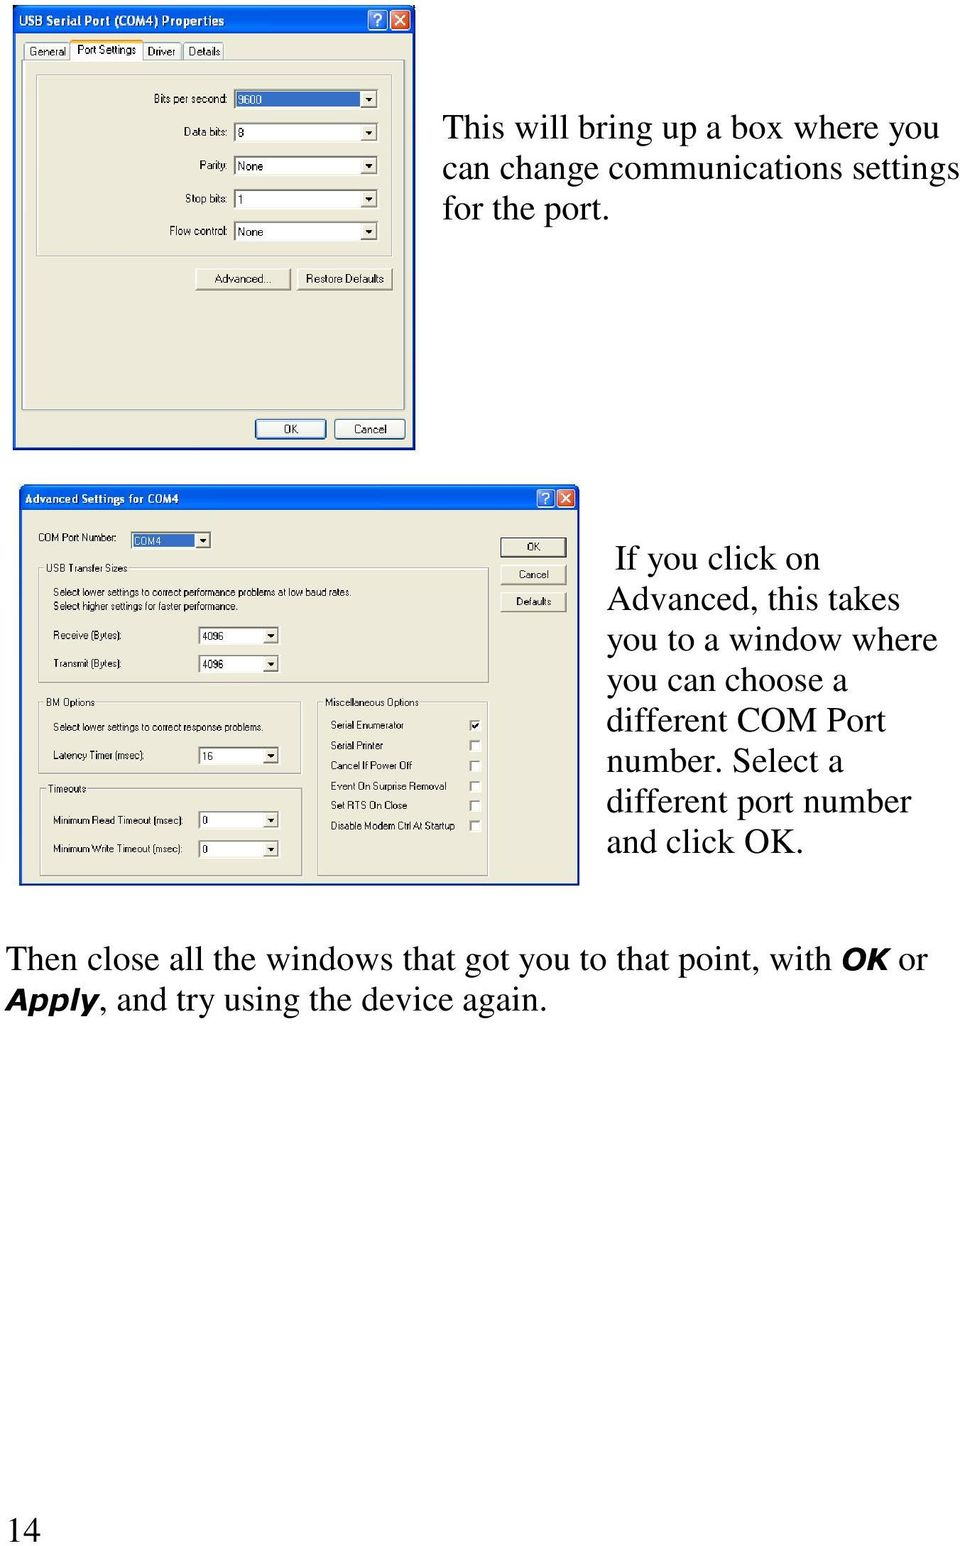 different COM Port number. Select a different port number and click OK.